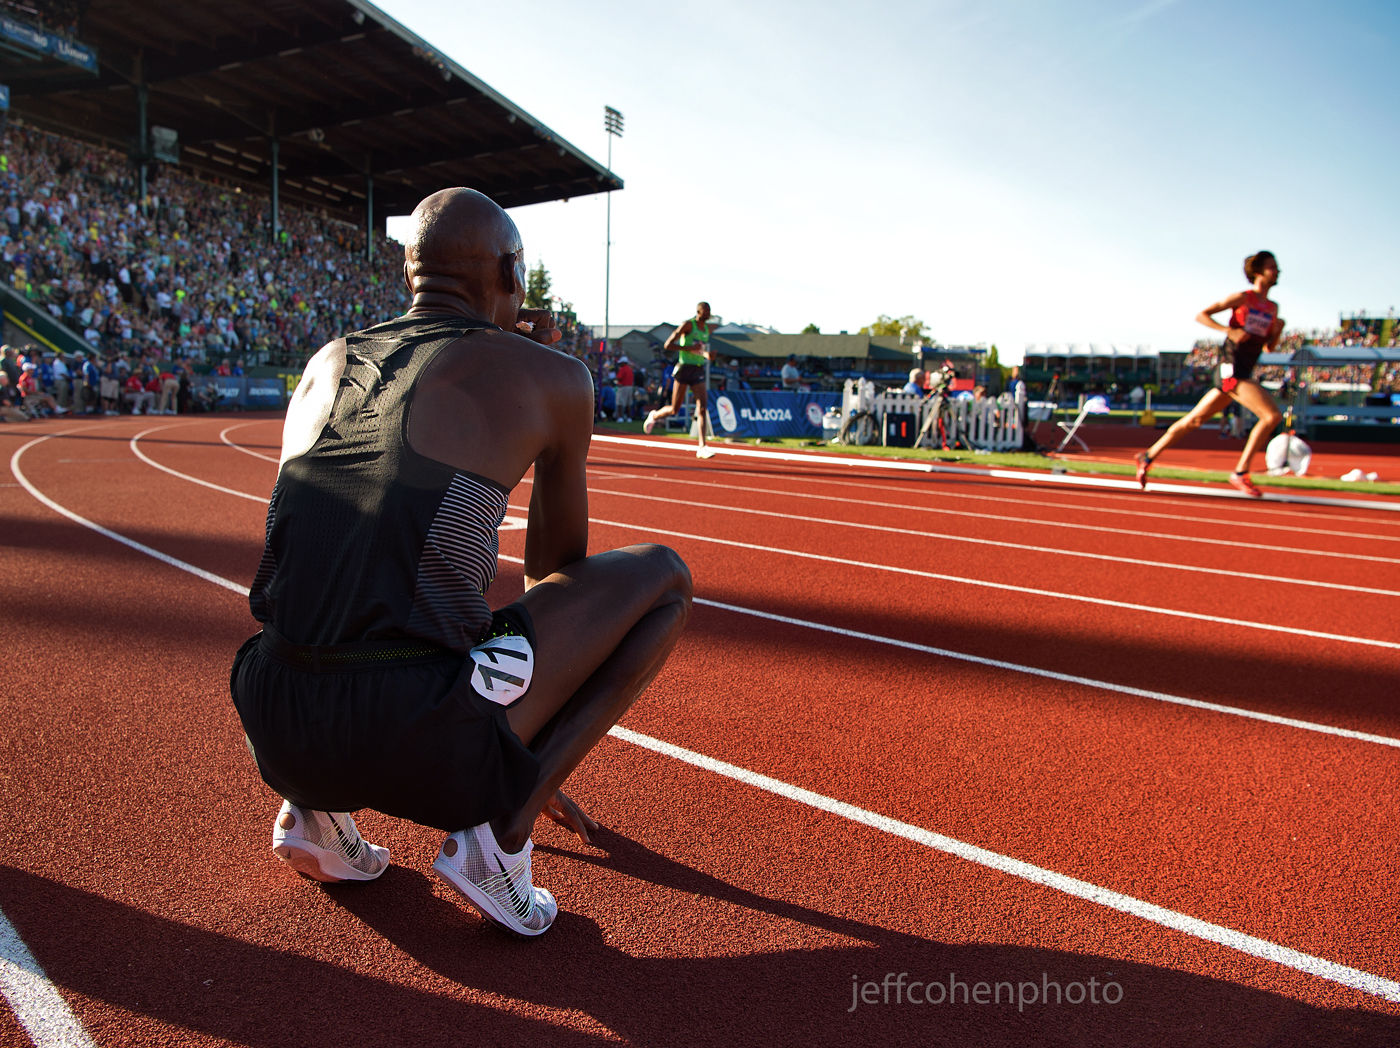 1r2016_oly_trials_day_1_lagat_watches_10k_jeff_cohen_photo_3870_web.jpg